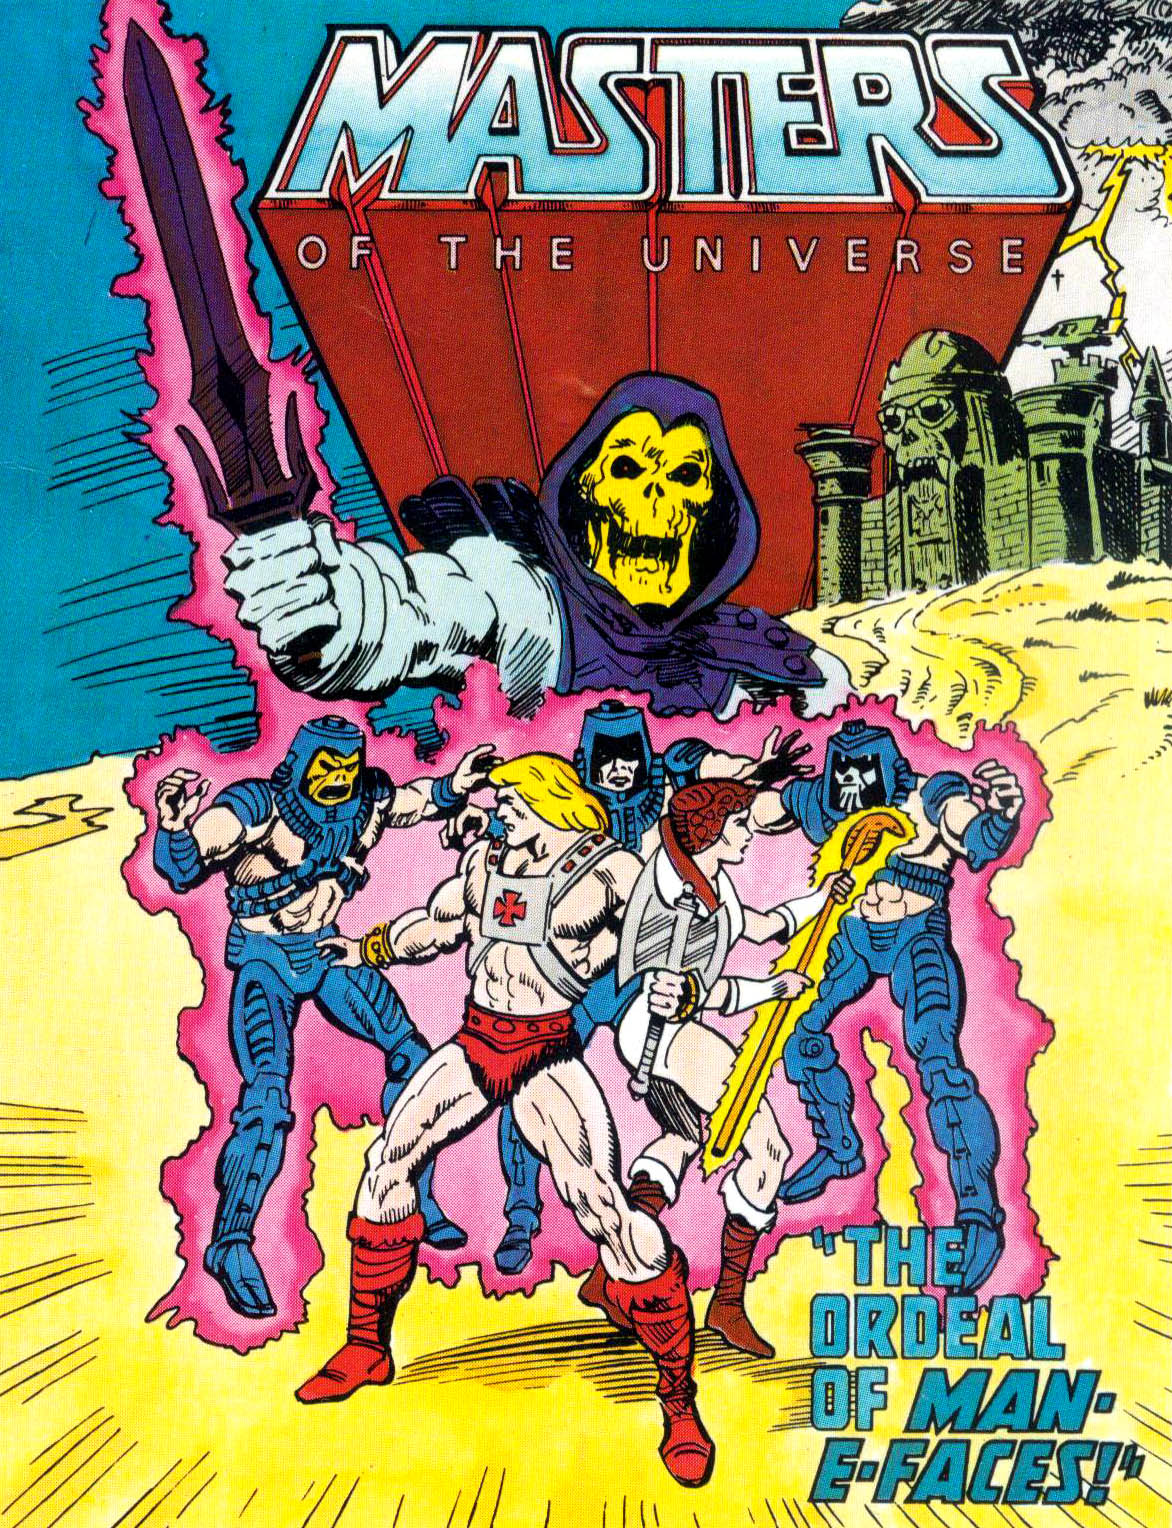 He Man Org Gt Publishing Gt Comics Gt Masters Of The Universe